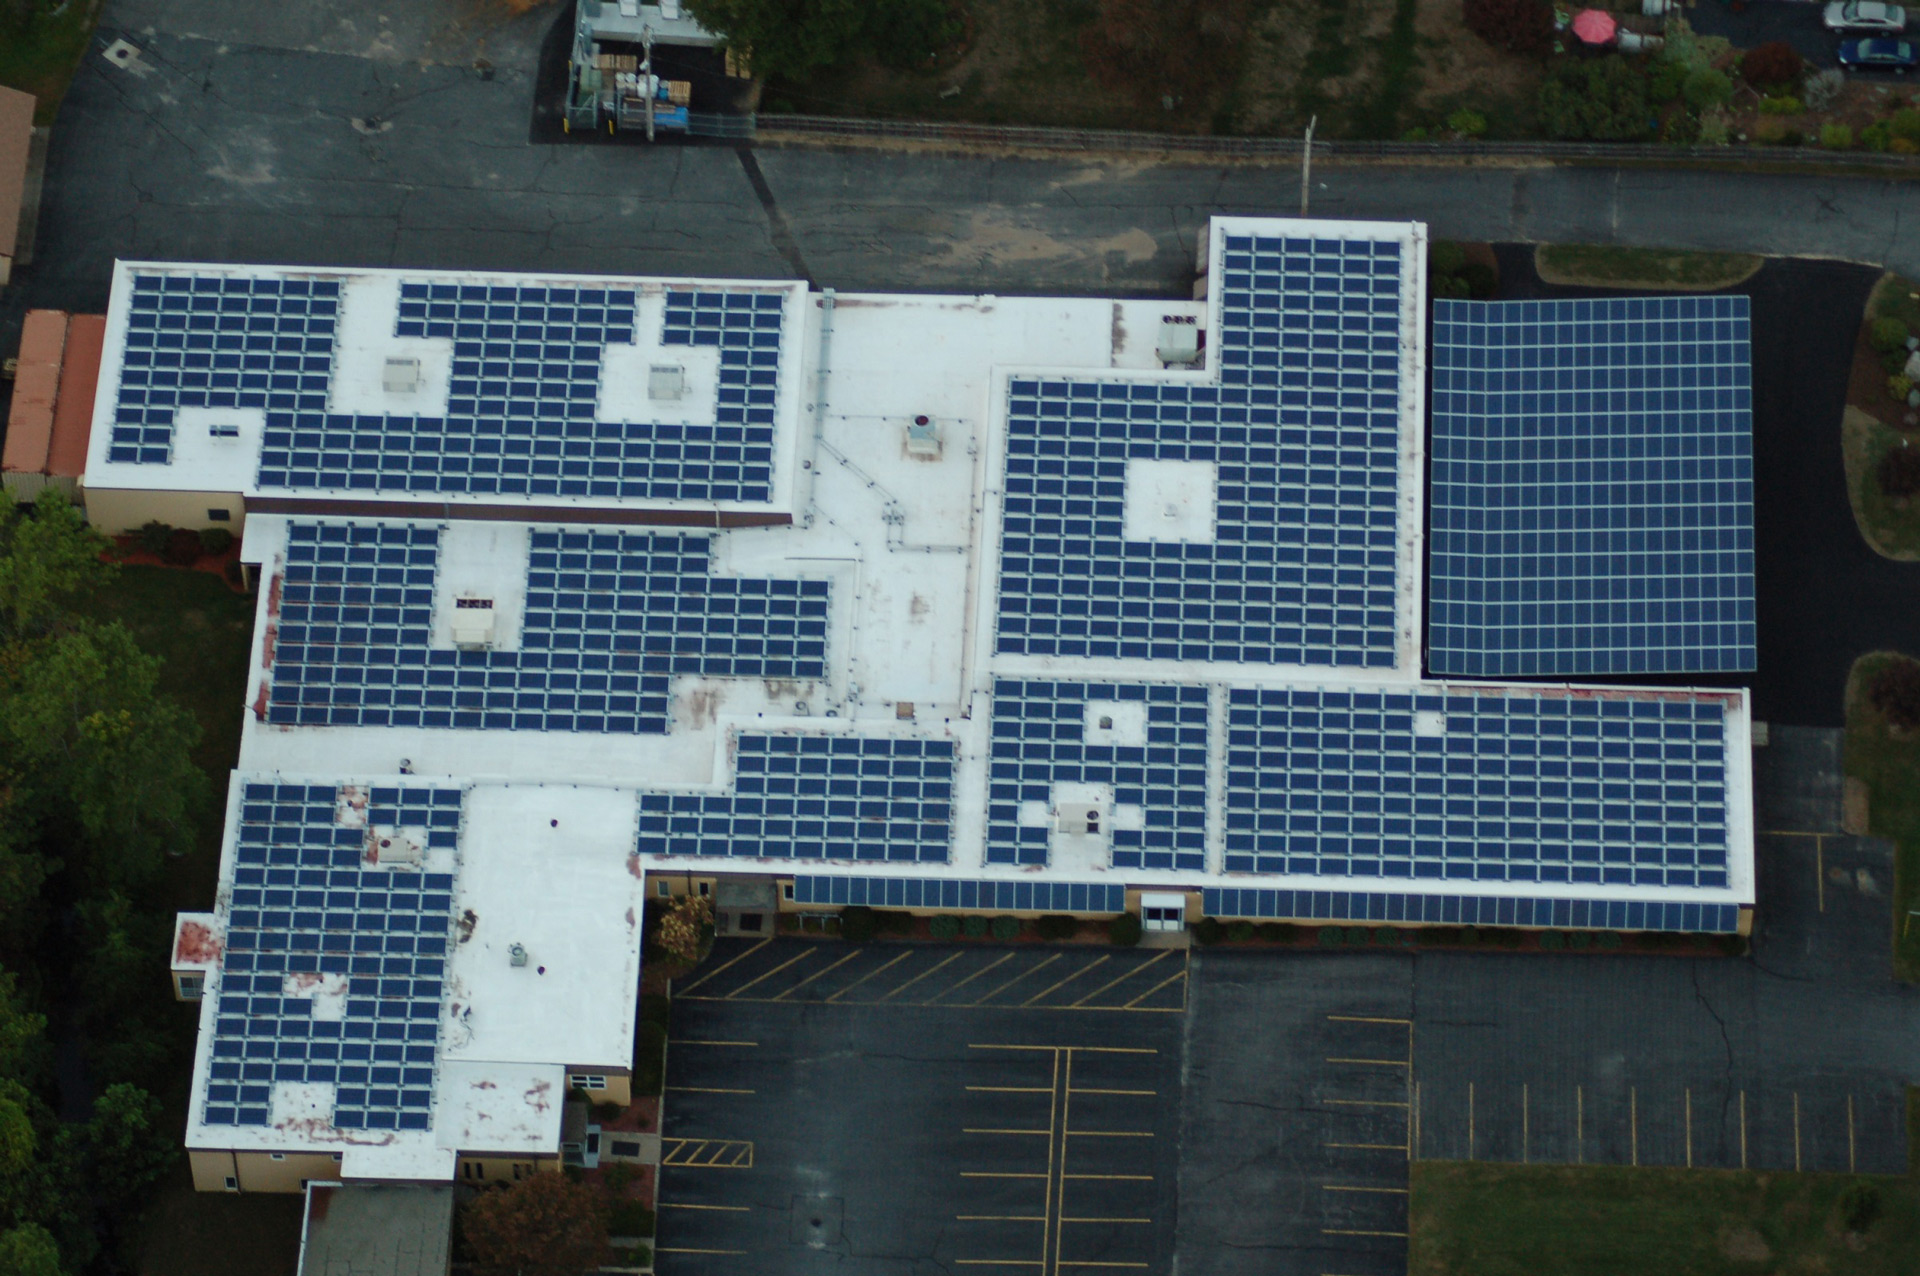 Solar panels on top of a commercial property